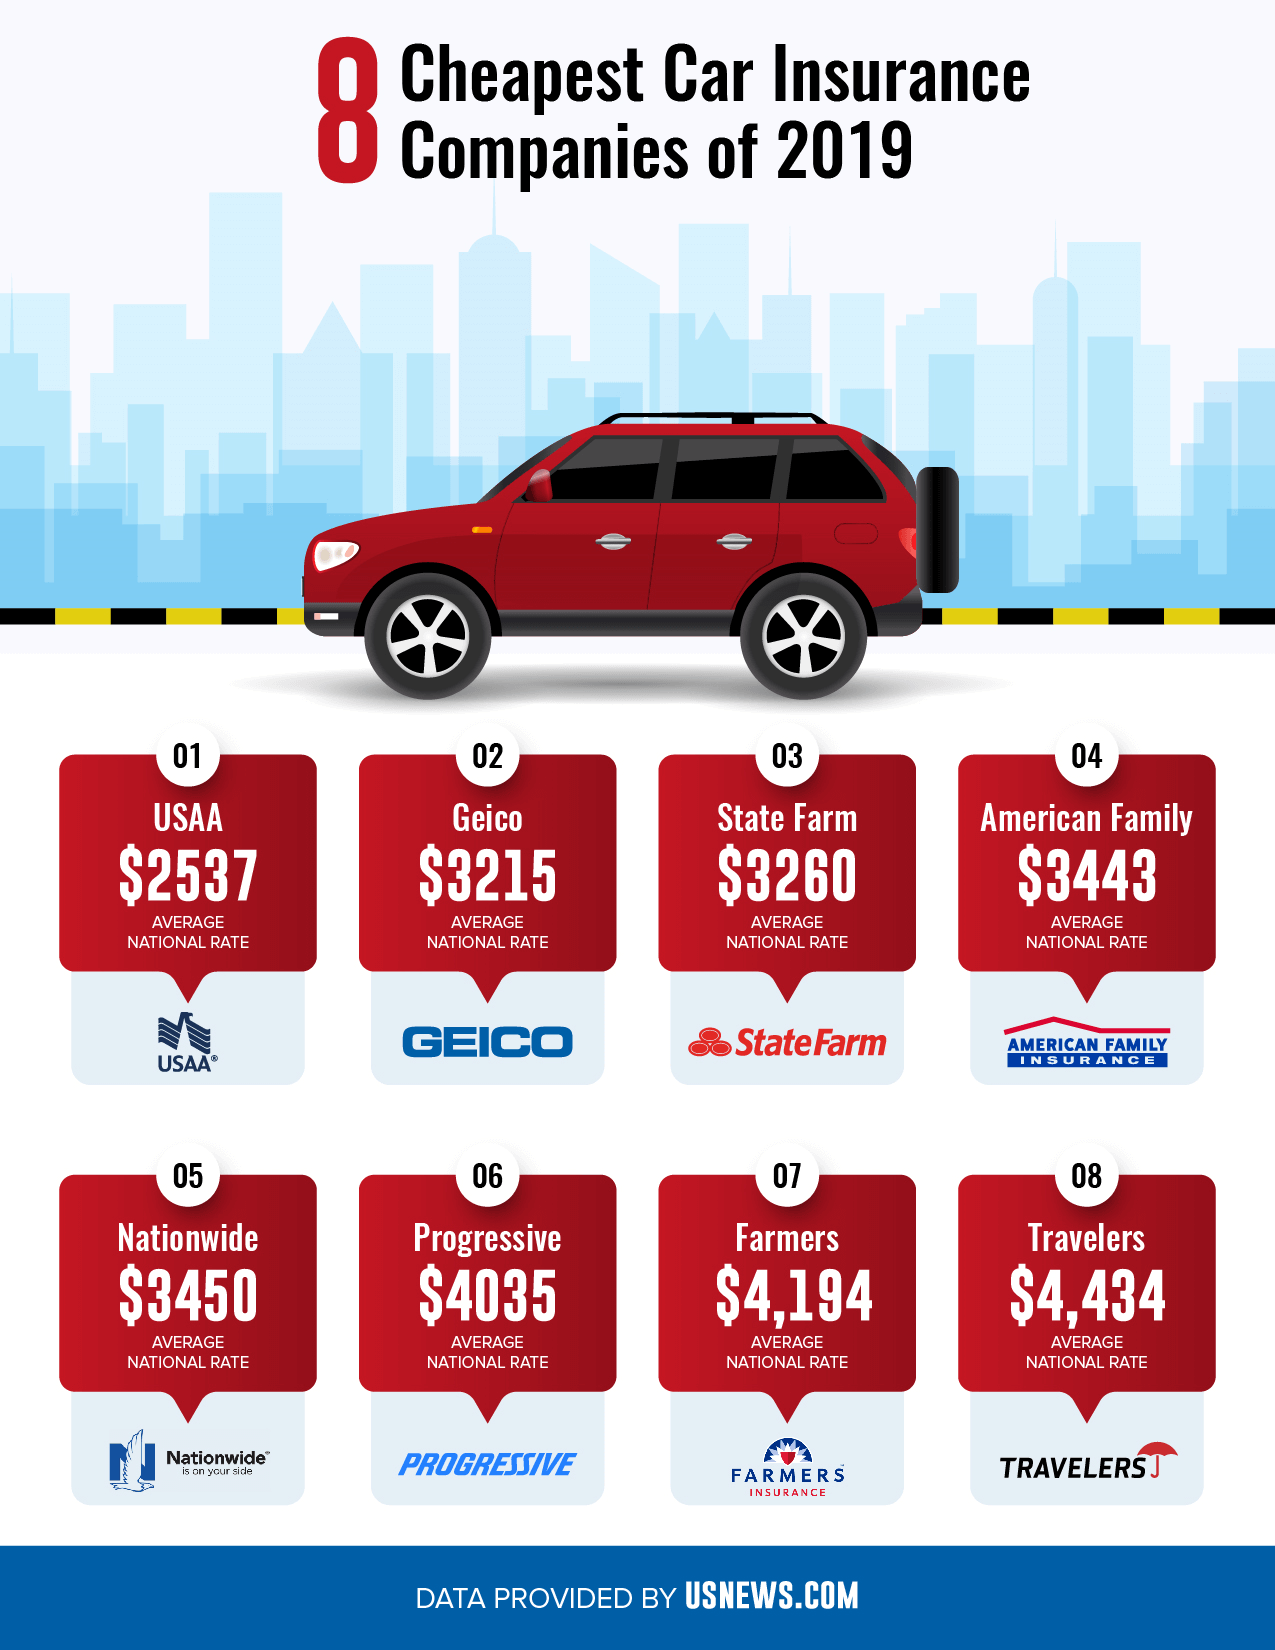 The 8 cheapest car insurance companies in 2019 based on